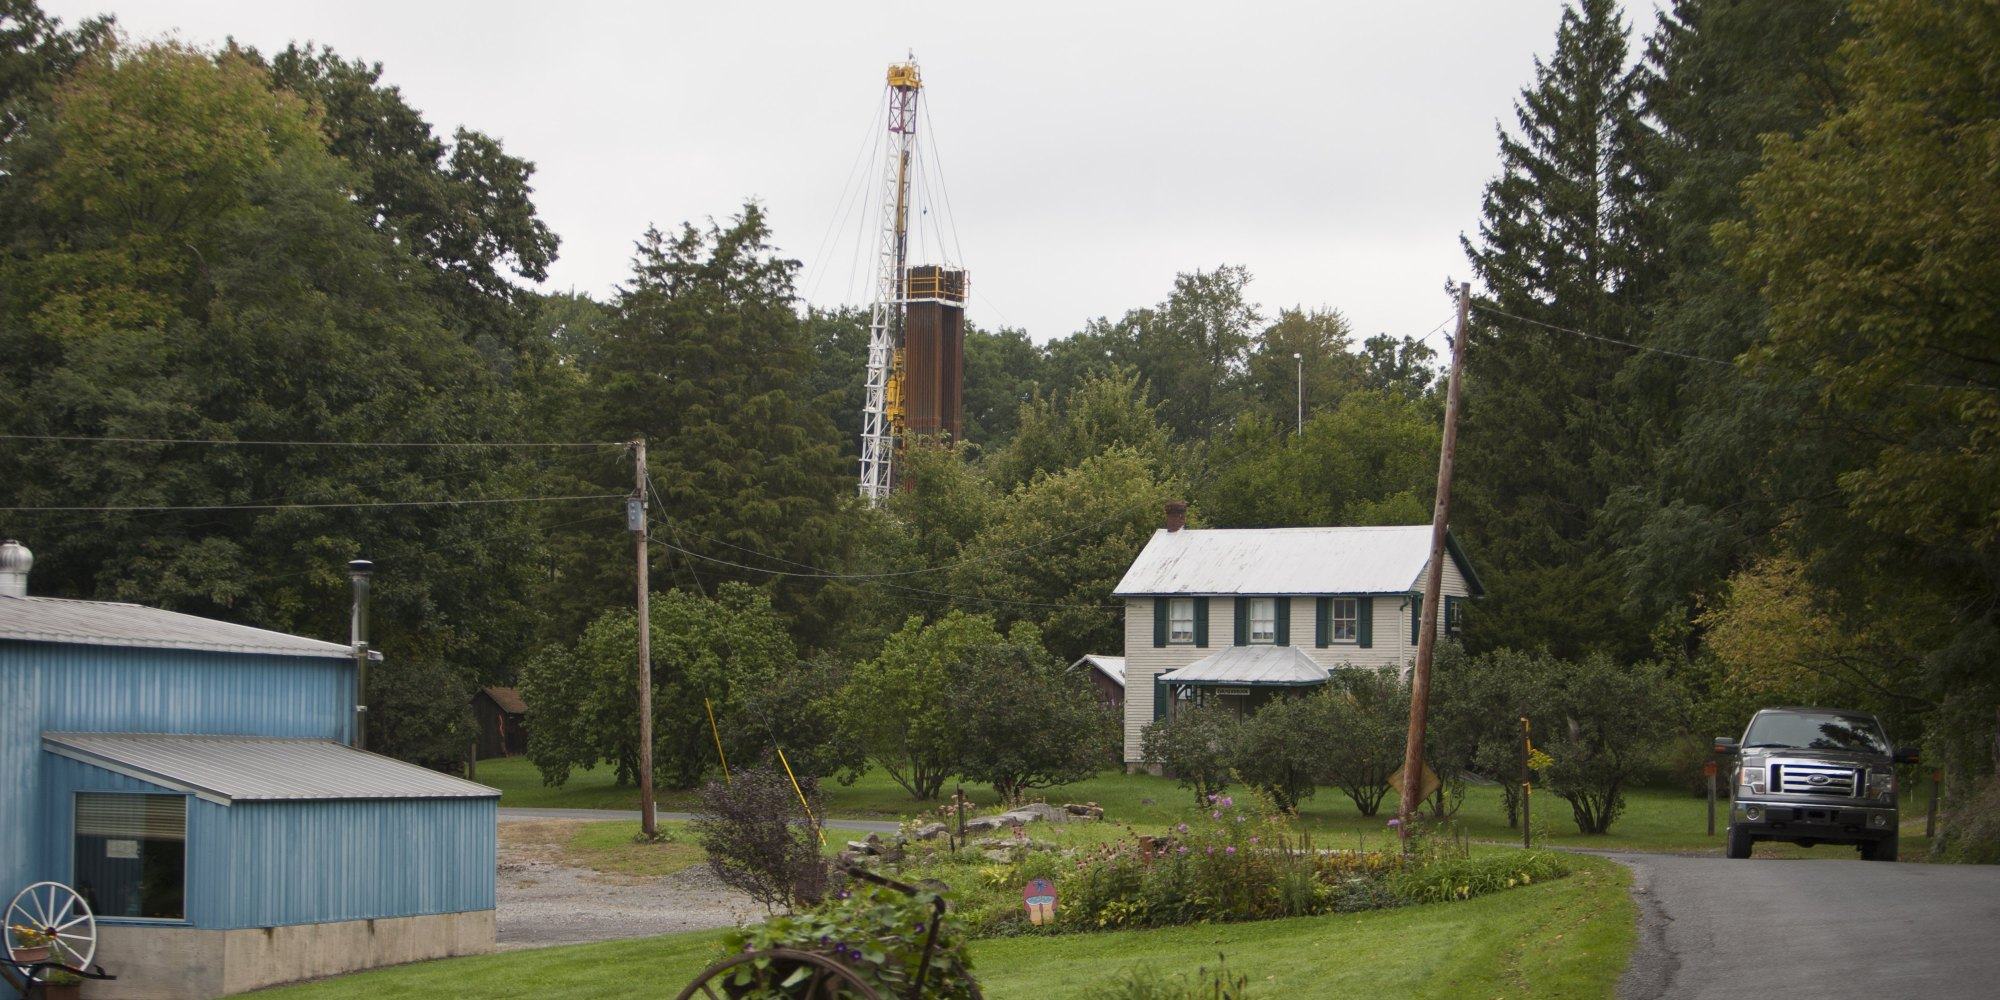 DOE study: Fracking chemicals didn't taint water